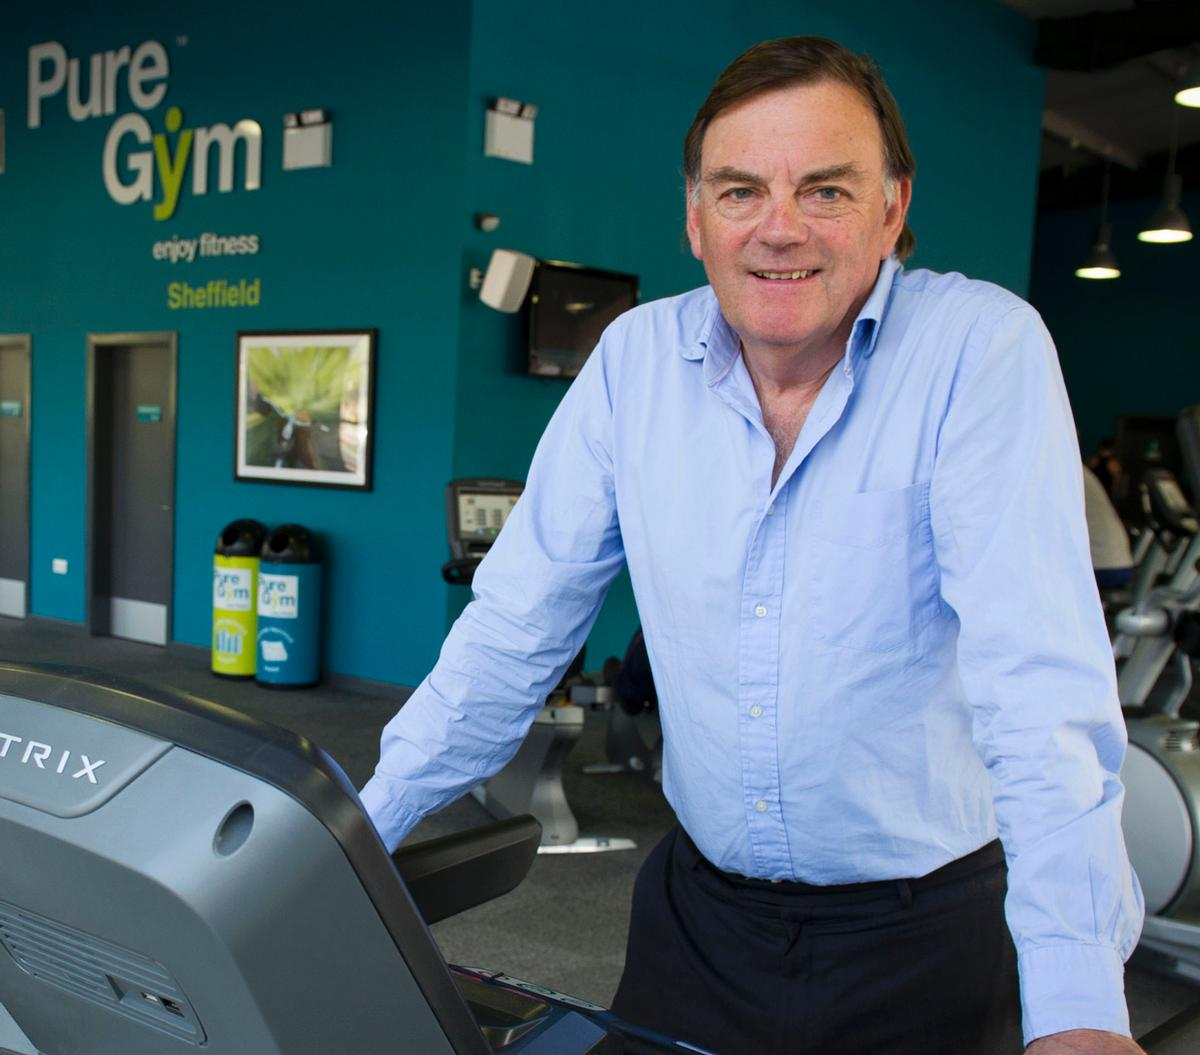 Roberts believes more accessible gym memberships could help shift health emphasis onto prevention rather than cure